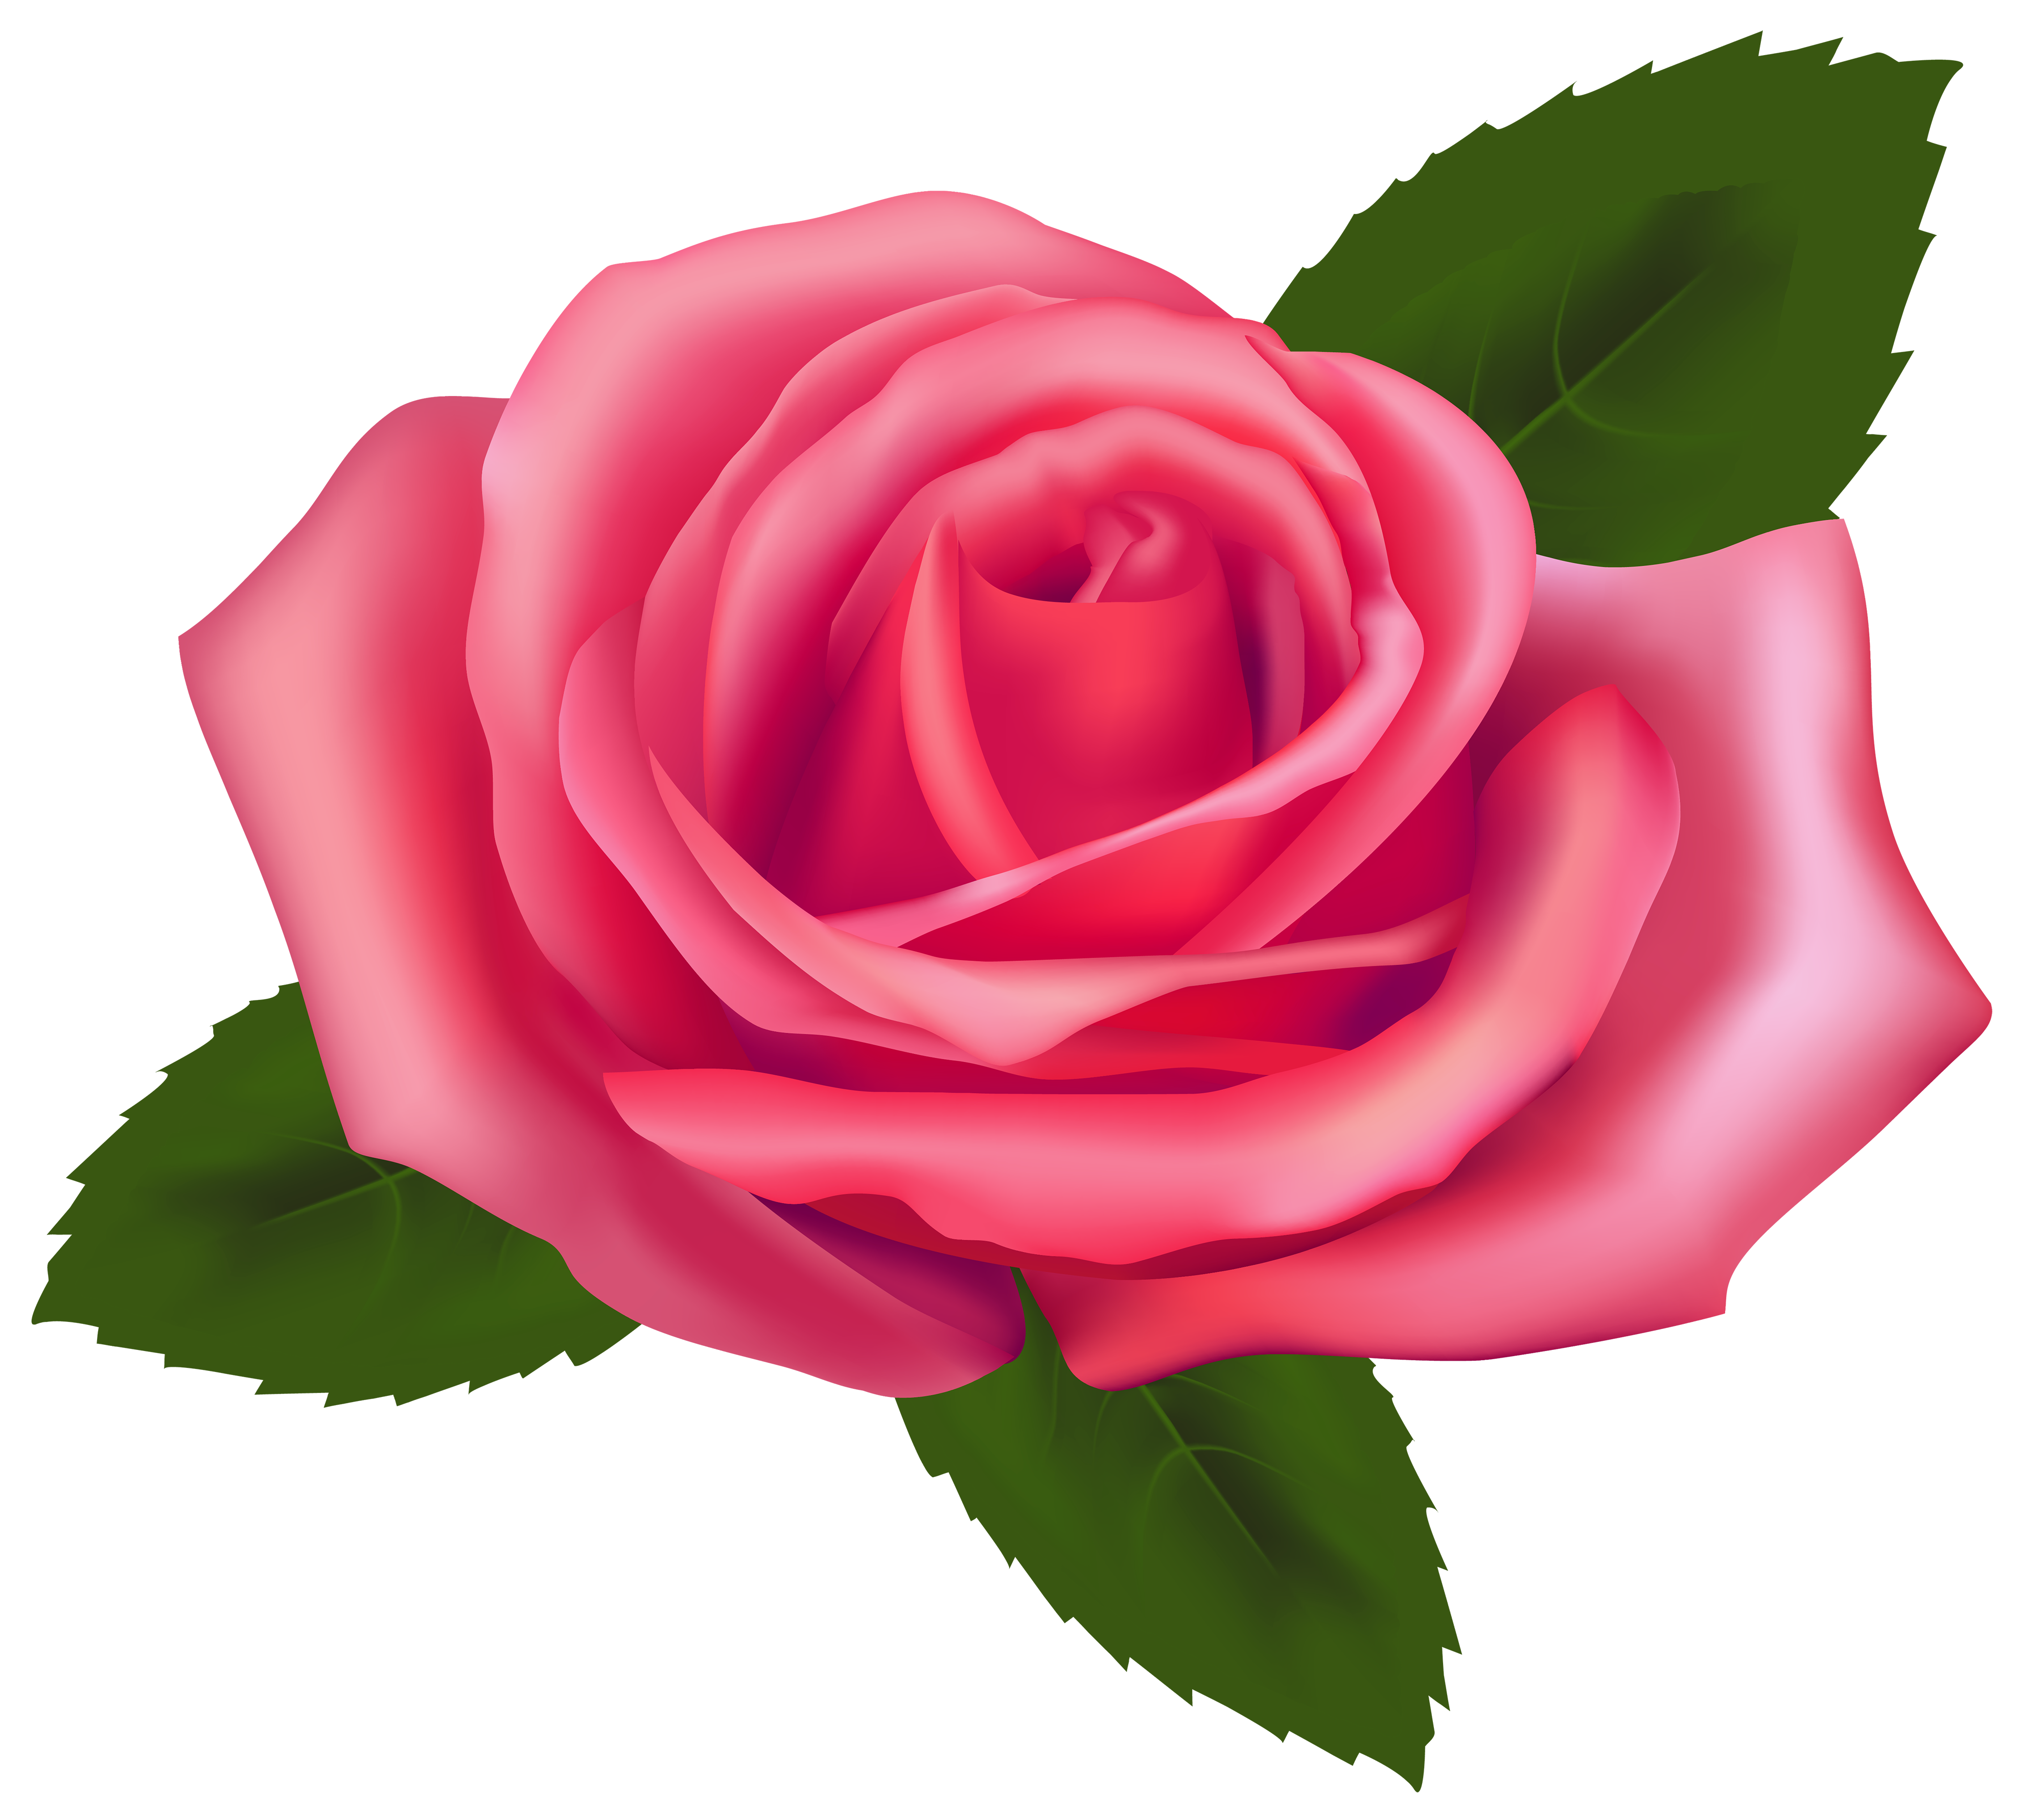 Pink Rose clipart #6, Download drawings